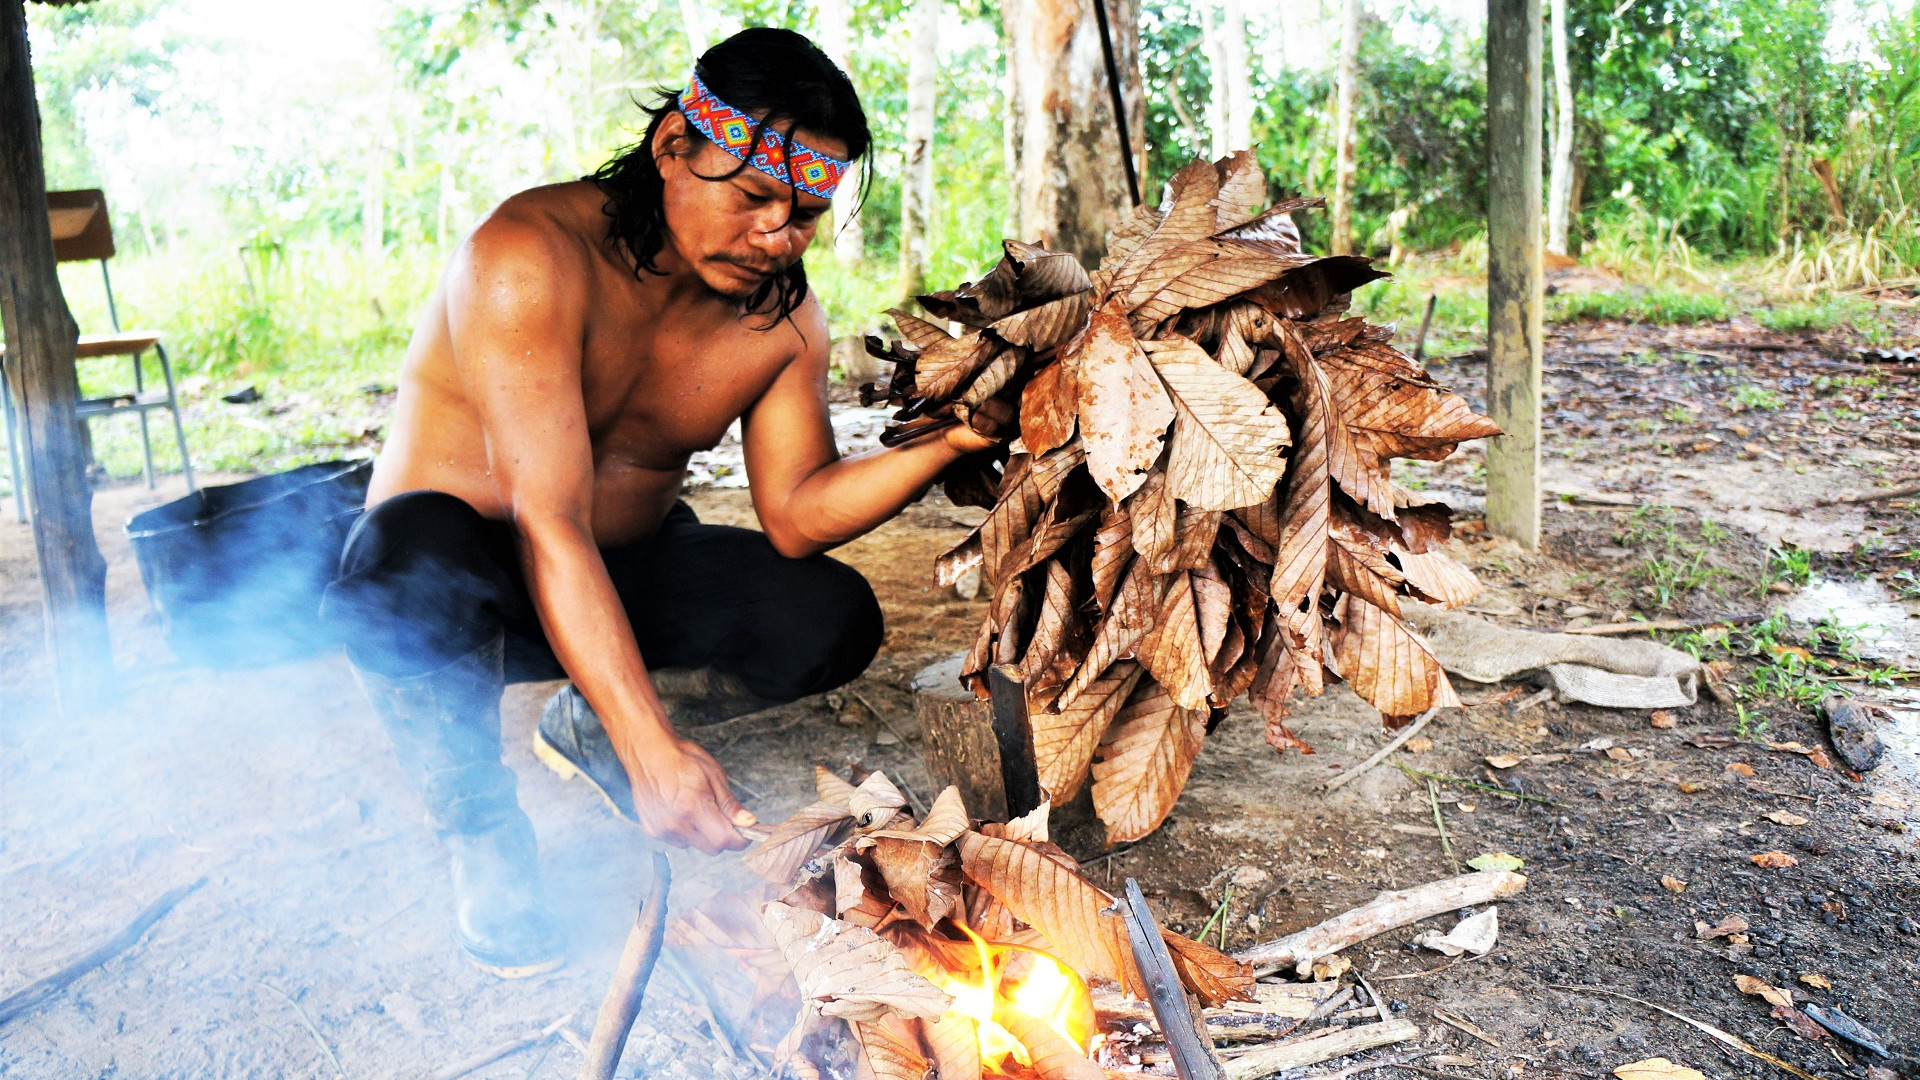 The Revelator: Indigenous peoples threatened in their own homelands